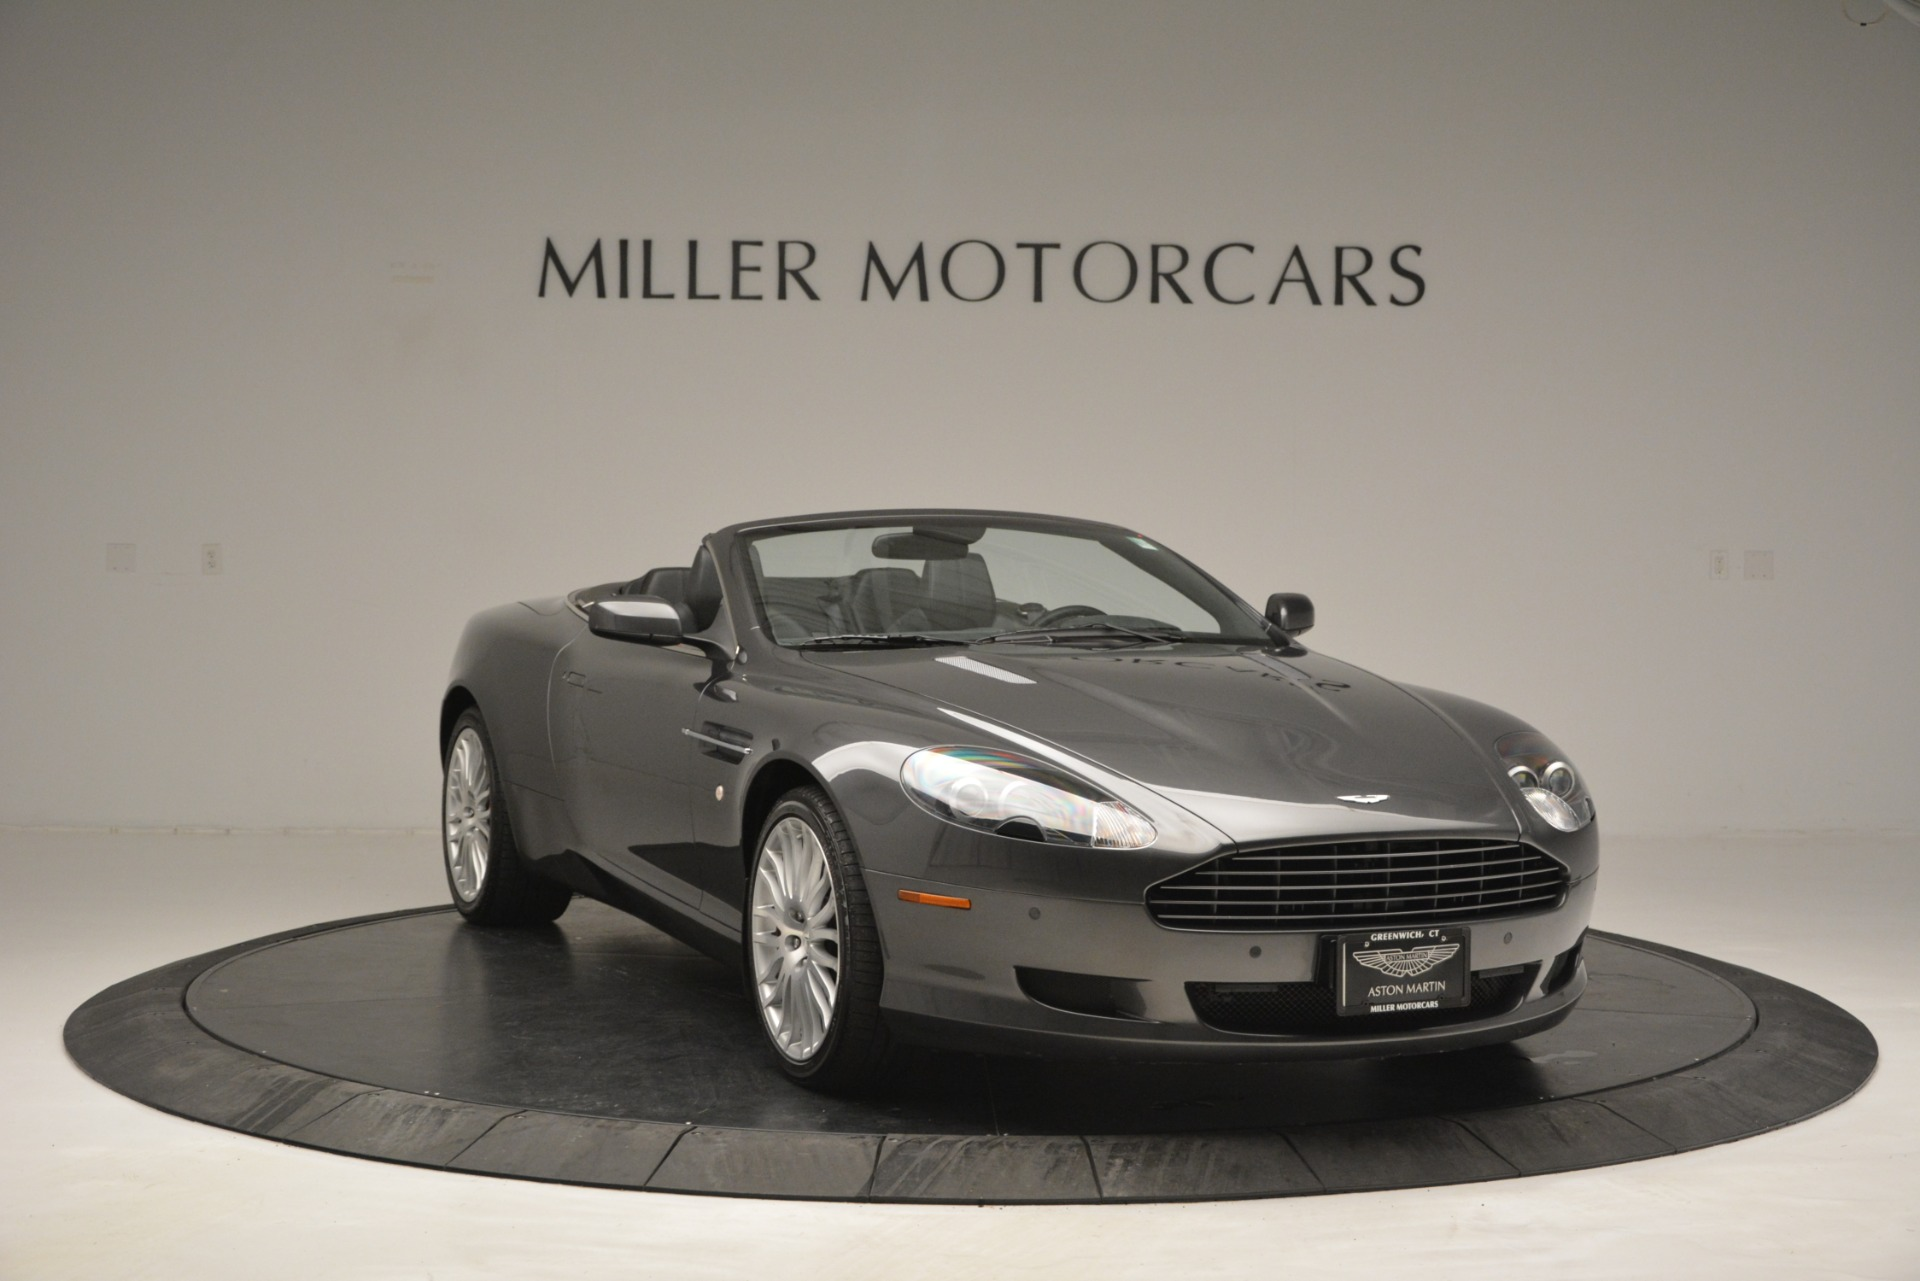 Used 2009 Aston Martin DB9 Convertible For Sale In Westport, CT 2930_p11